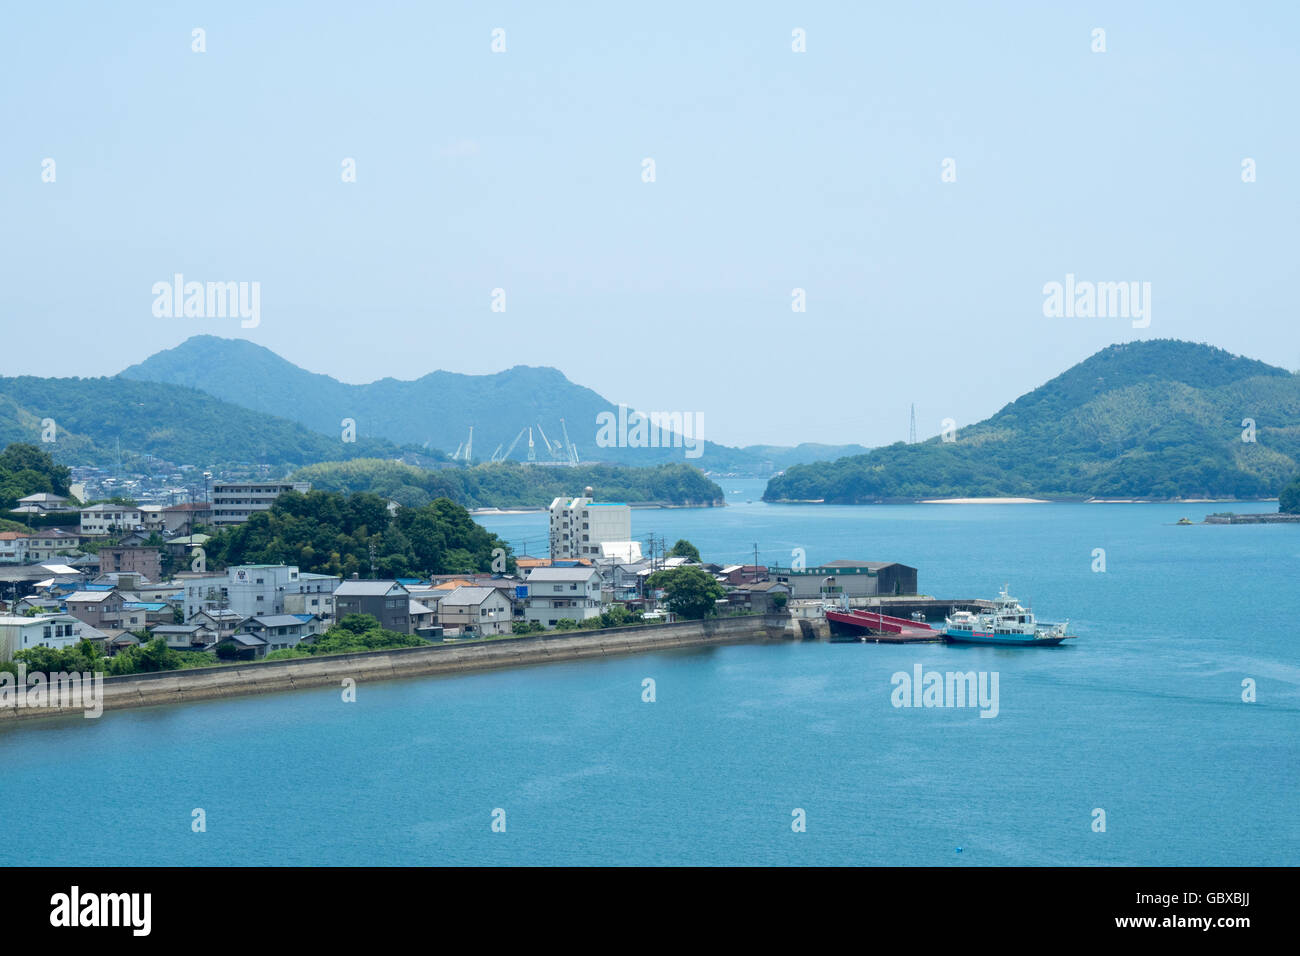 Seaside town on Innoshima Island in the Seto Inland Sea. - Stock Image